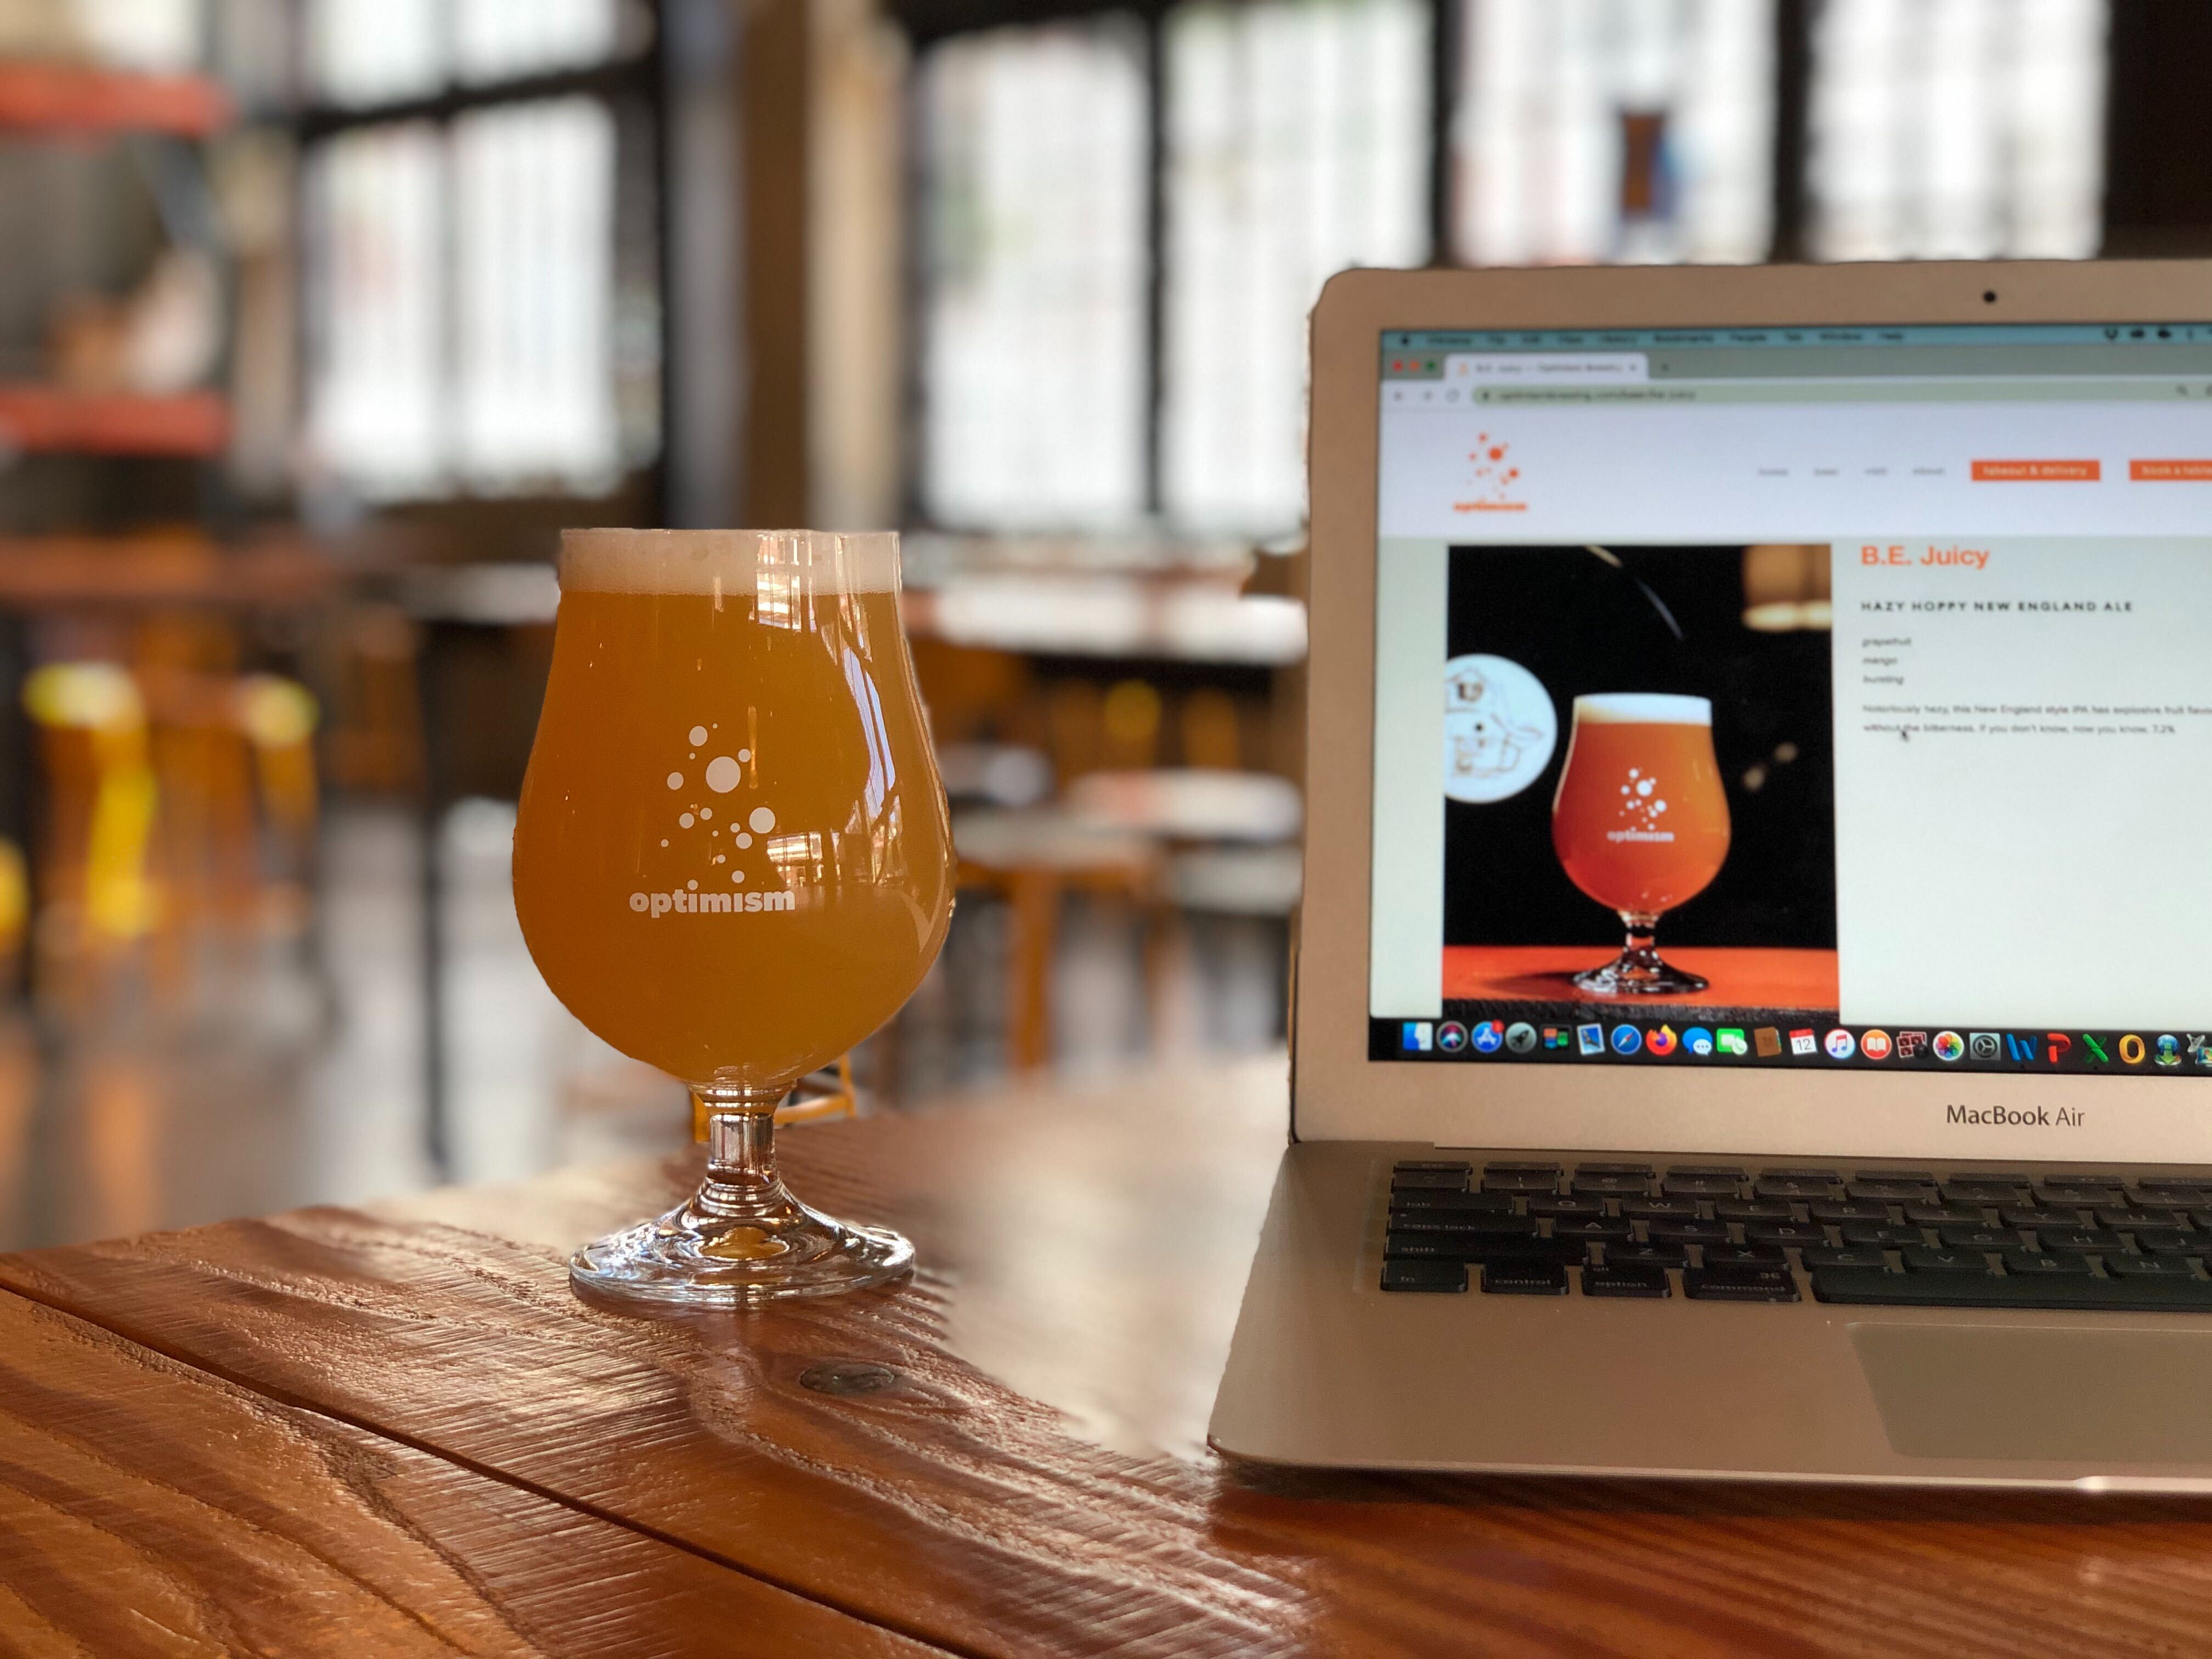 A glass of beer sits on a table at Optimism Brewing, with an open laptop that shows the name of the beer